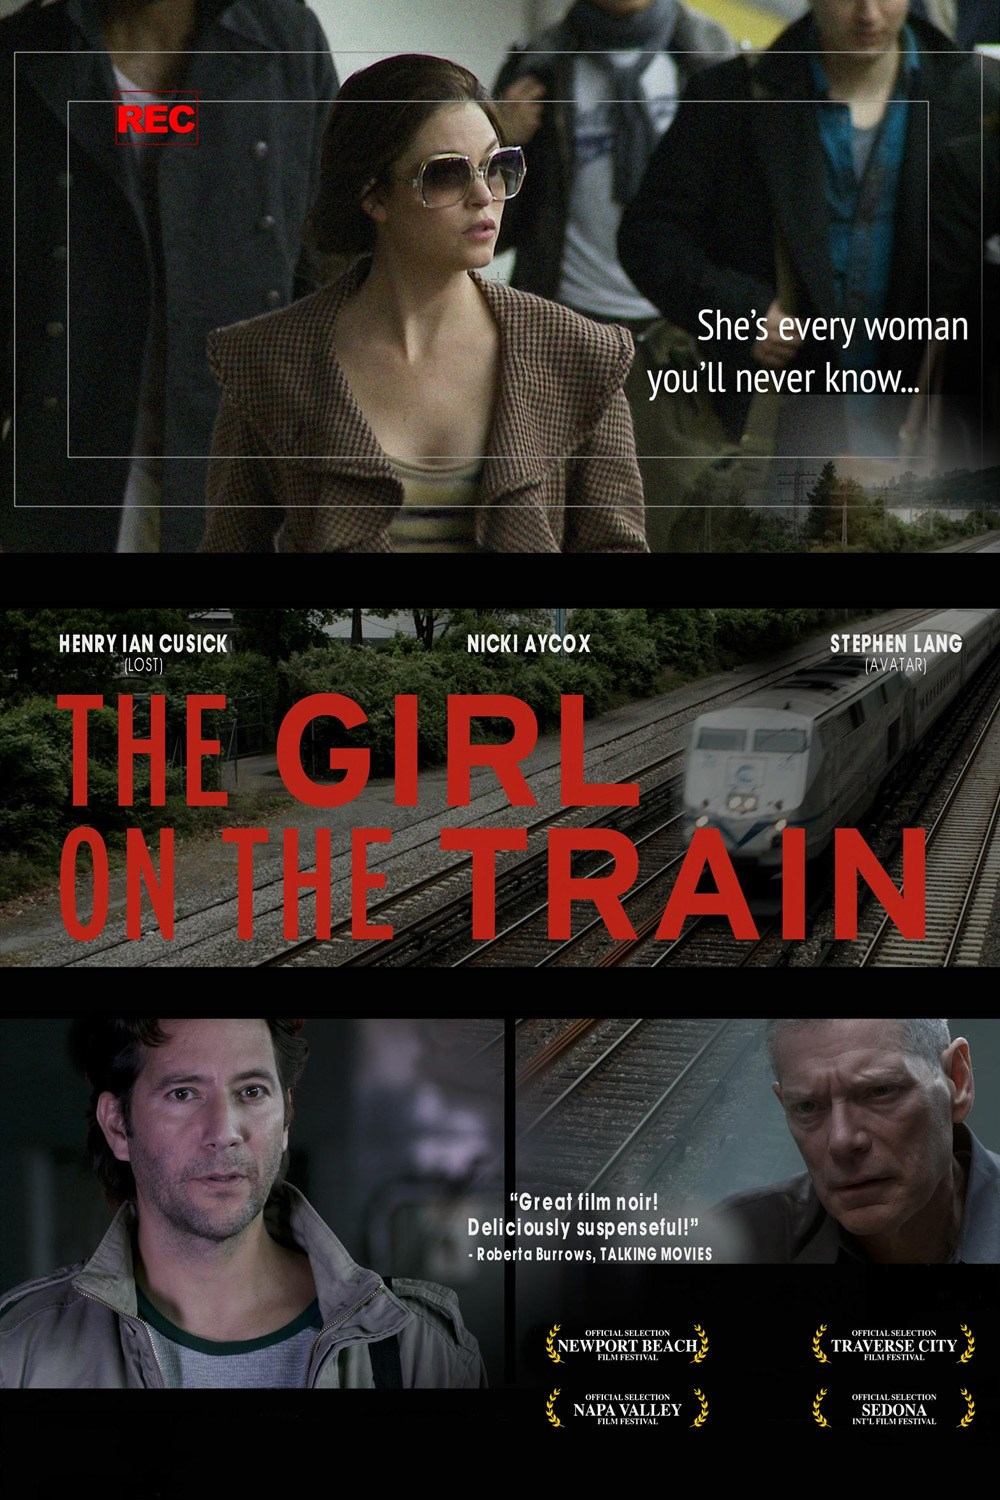 The Girl on the Train YIFY subtitles - details